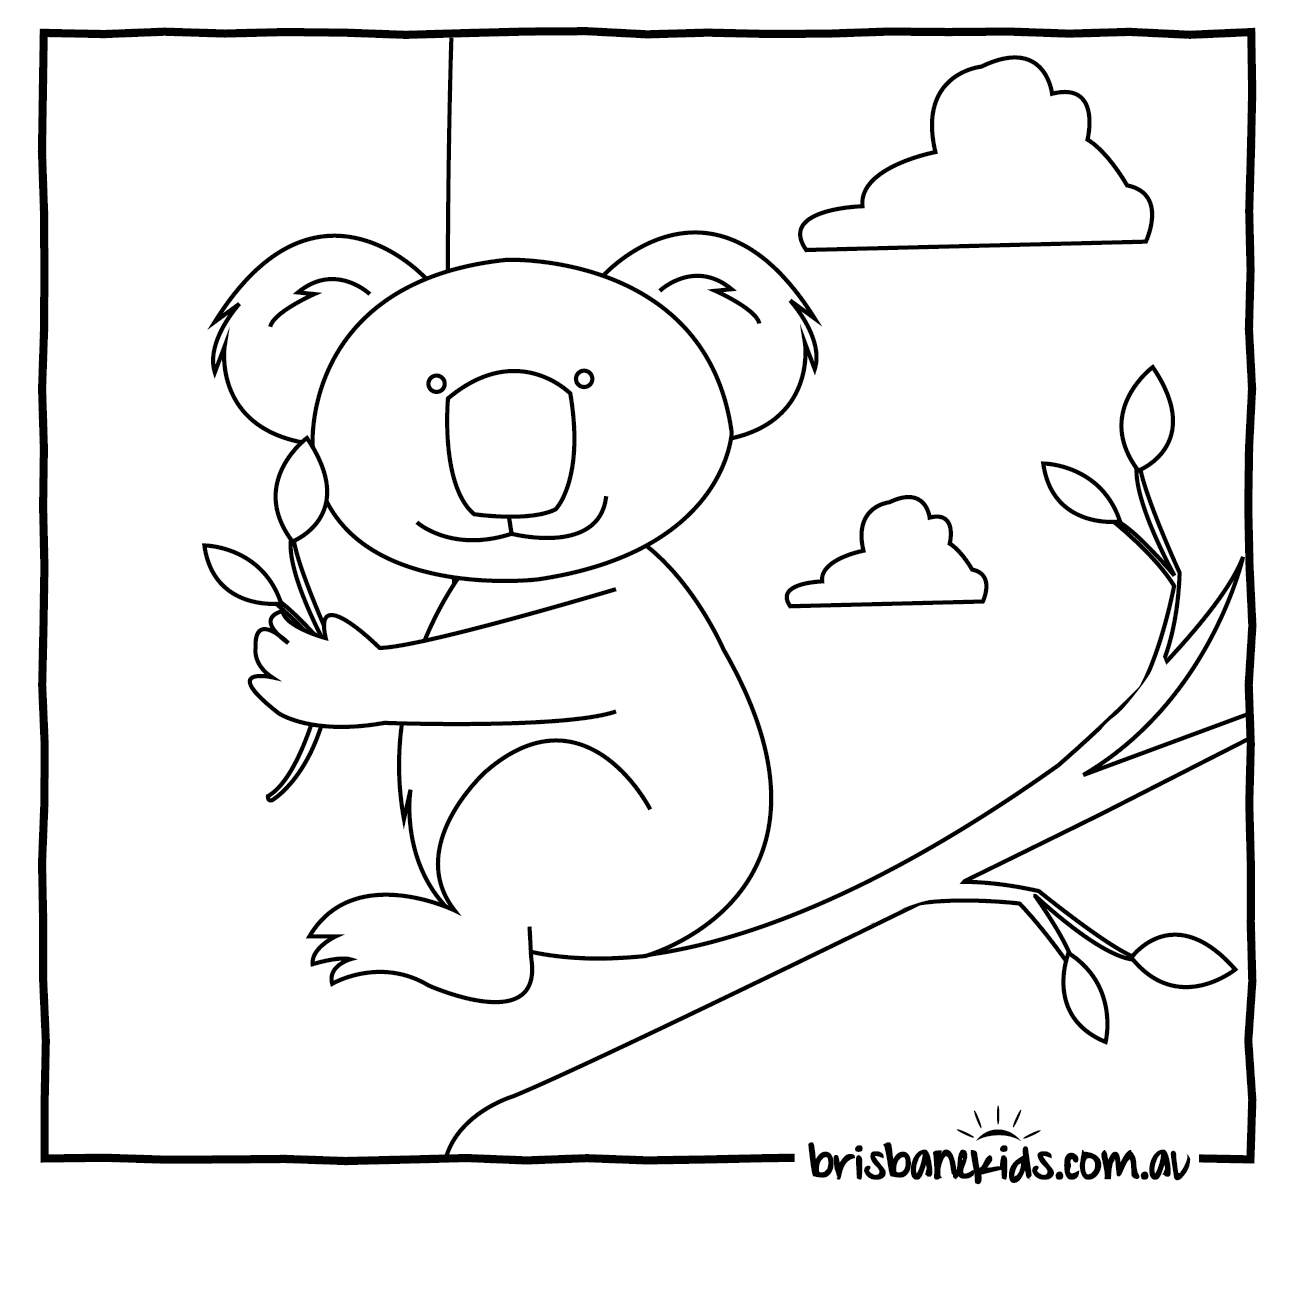 Australian Animals Colouring Pages | Brisbane Kids - Free Printable Aboriginal Colouring Pages